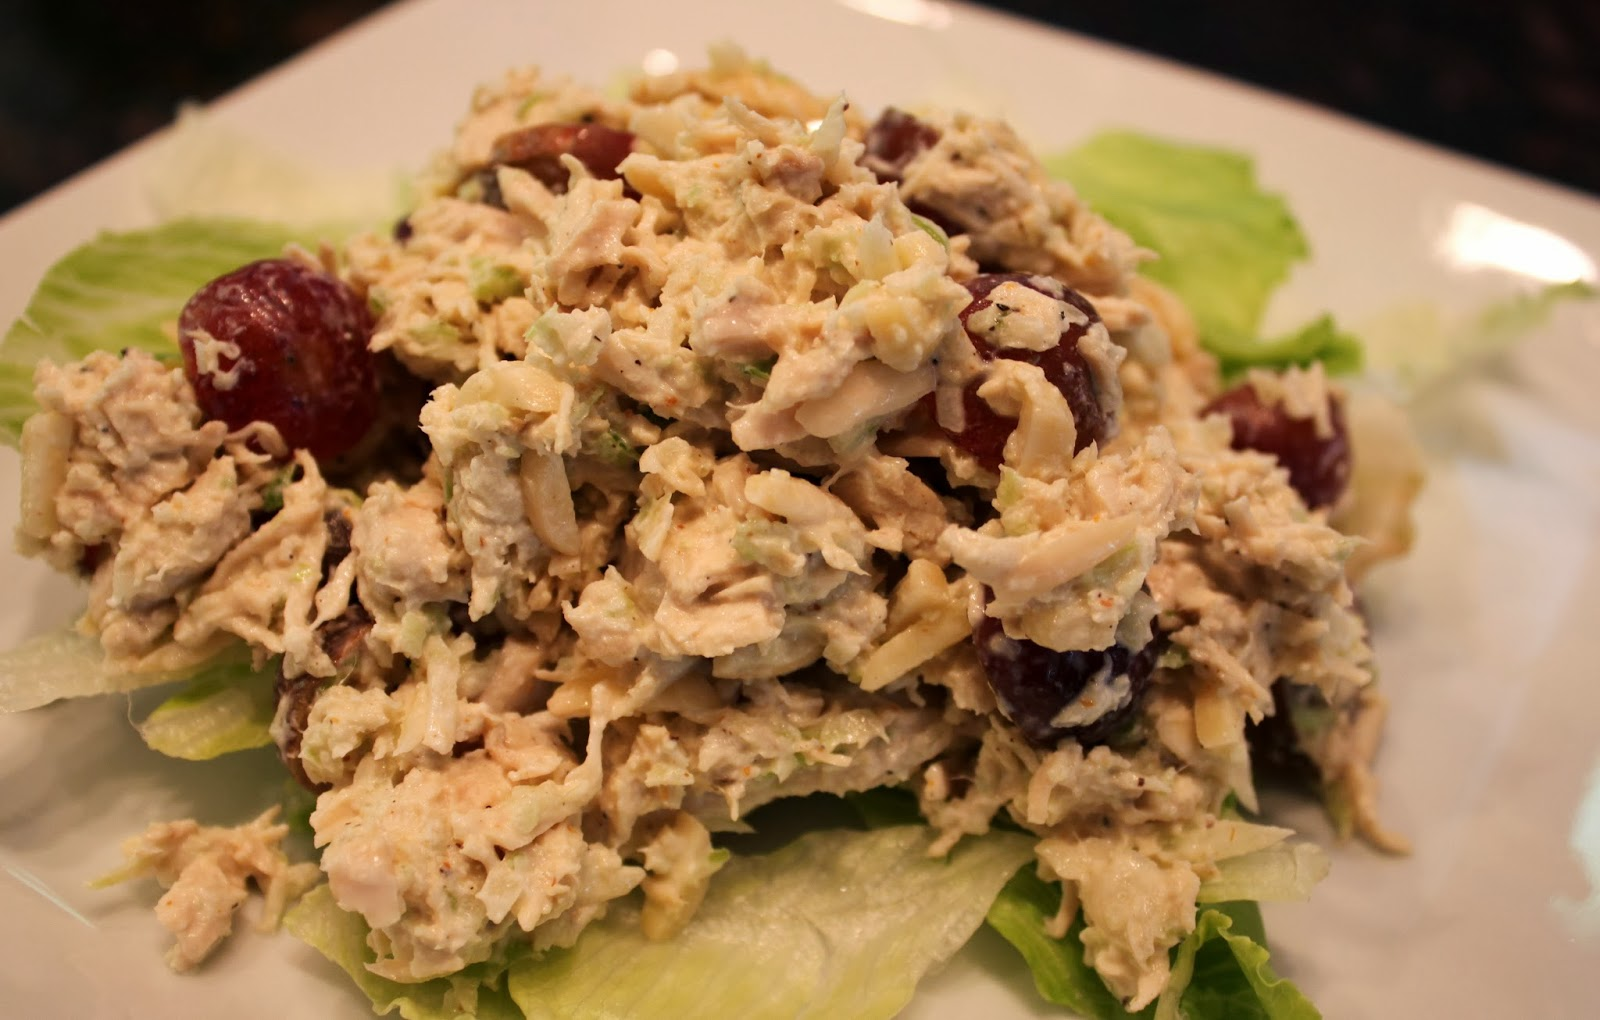 Kelly's Healthified Kitchen: Paleo Chicken Salad with Grapes & Almonds